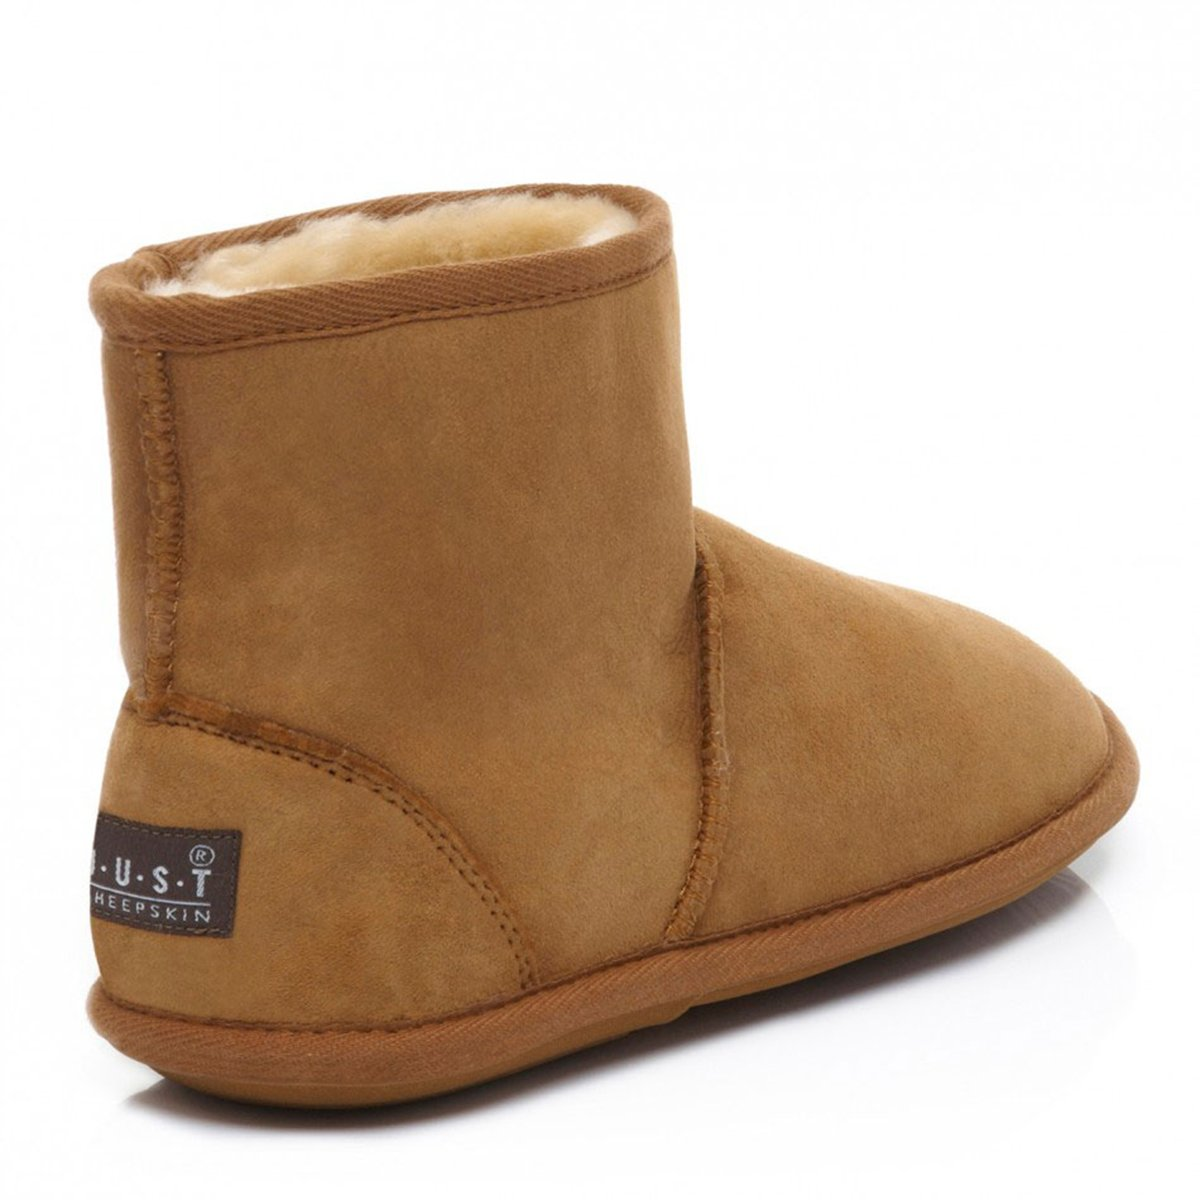 d639c16b2abefc Just Sheepskin Mens Chester Sheepskin Slippers: Amazon.co.uk: Shoes & Bags